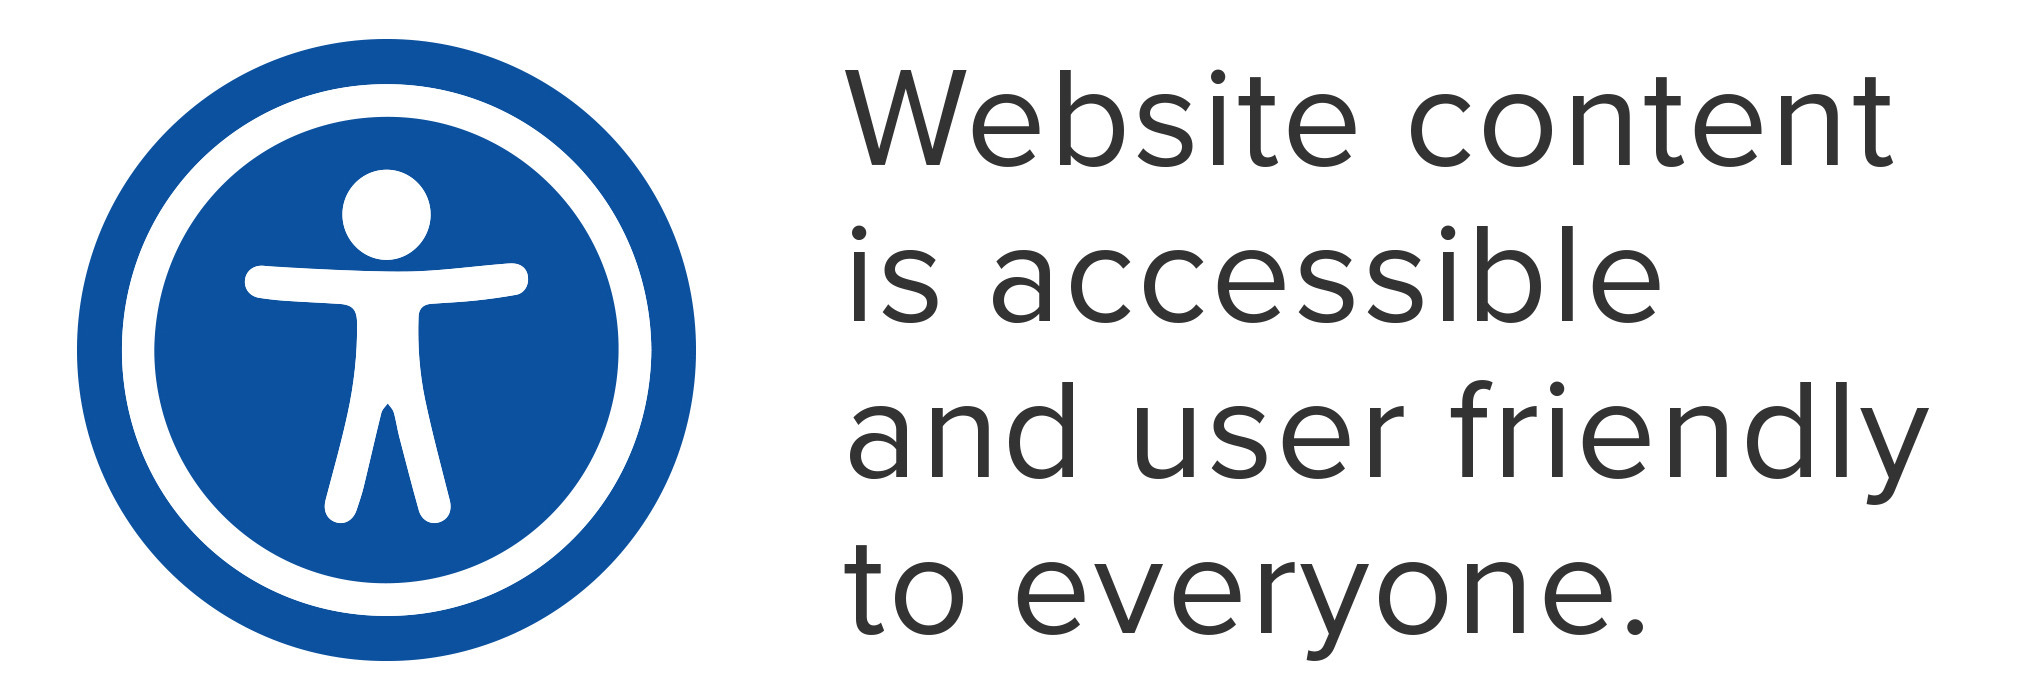 Website content is accessible and user friendly to everyone.